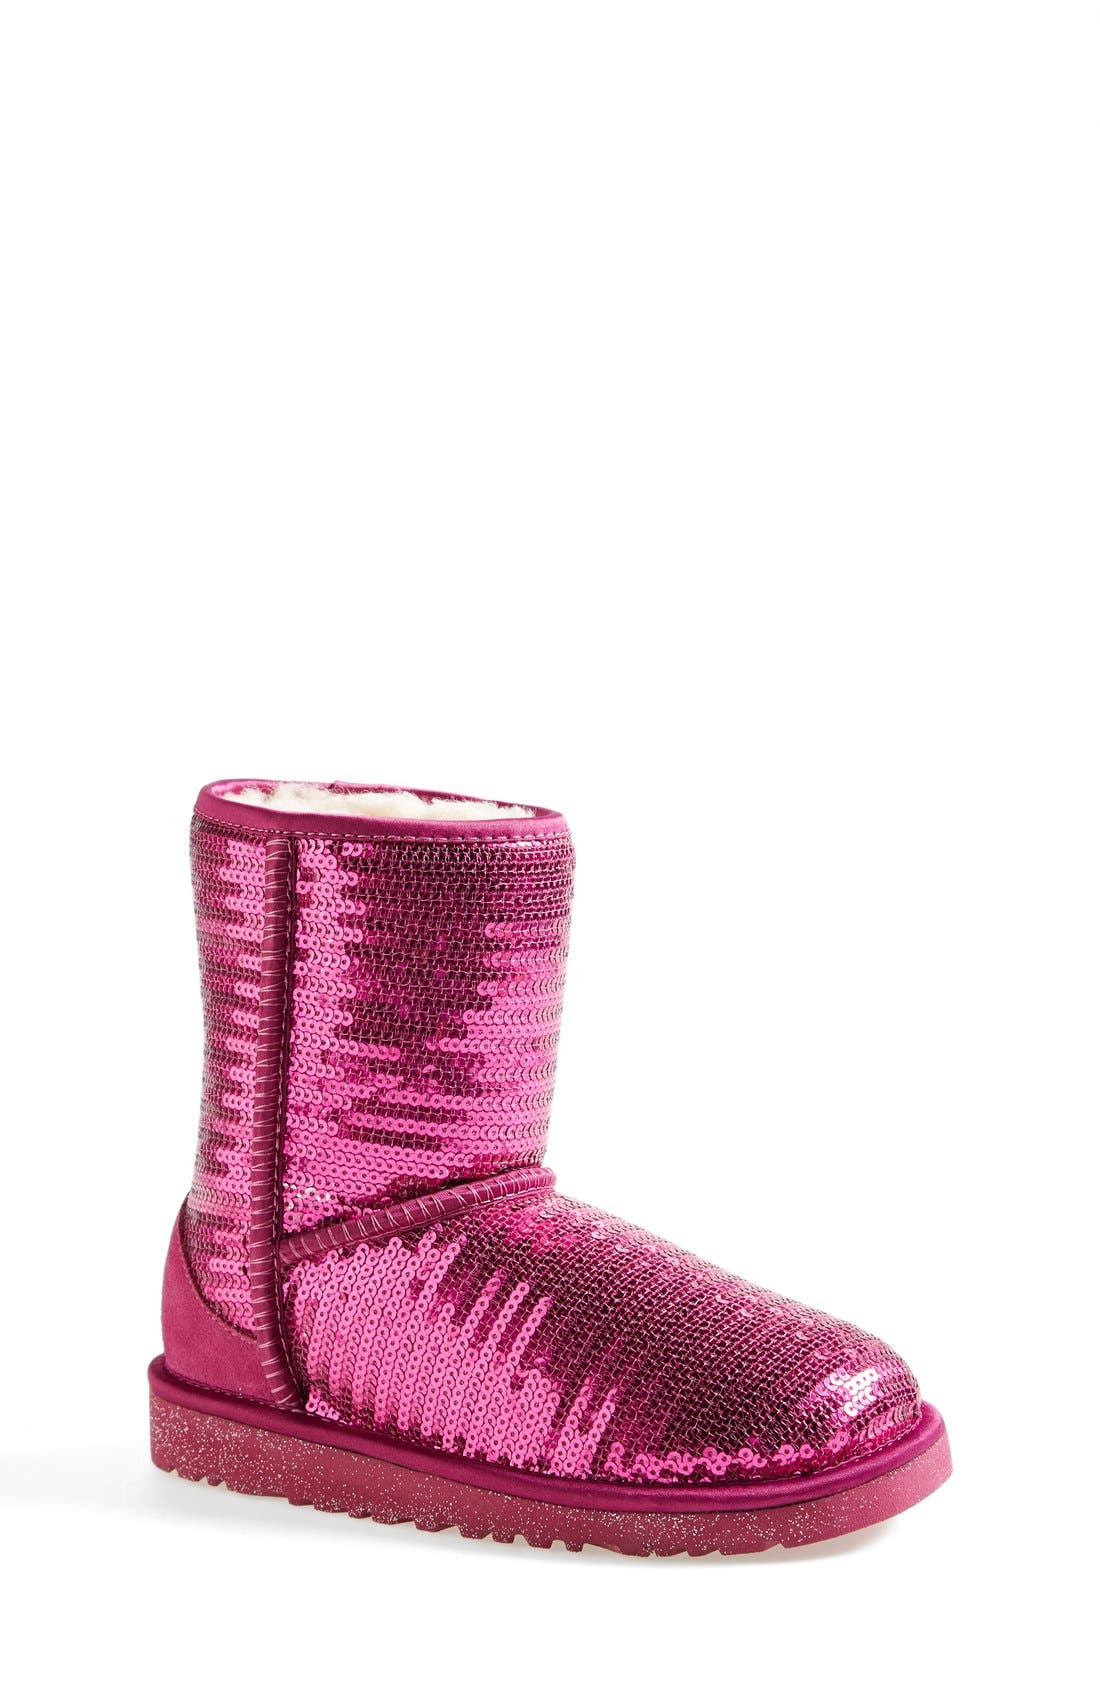 Main Image - UGG® 'Classic Short Sparkle' Boot (Little Kid & Big Kid)